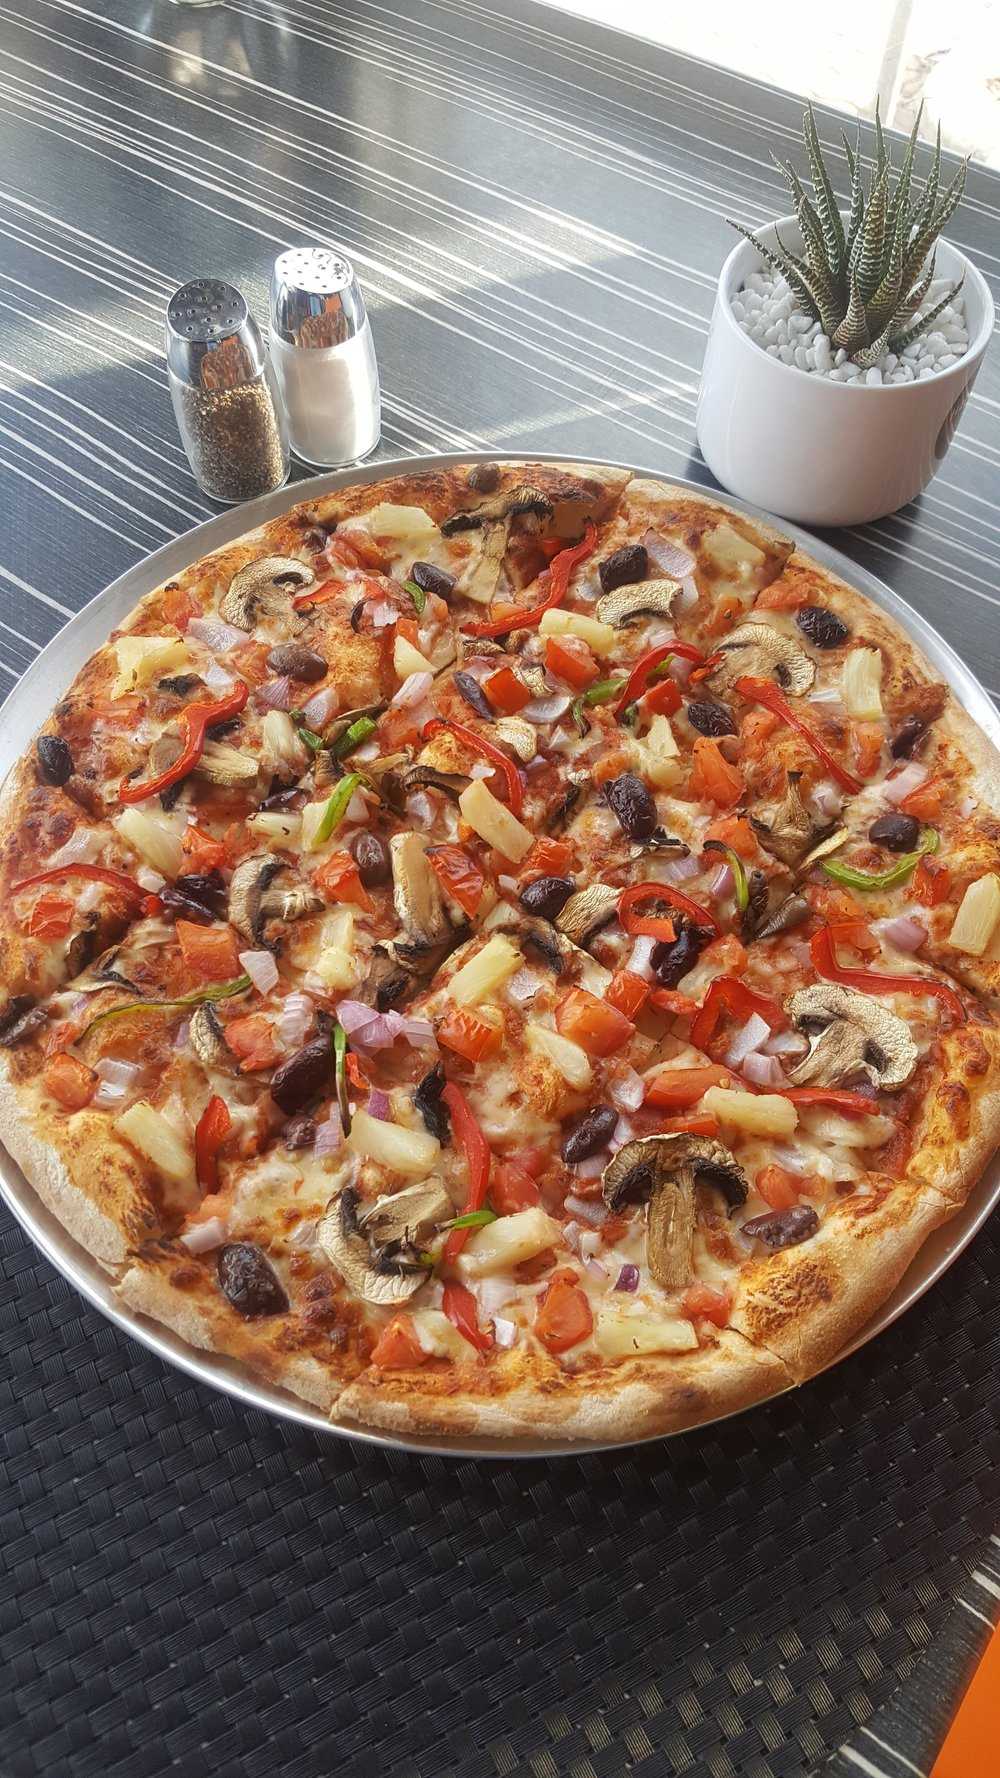 Vegolovers   Our classic vegetarian pizza - but now with the option of vegan cheese!  Fresh tomato and capsicum alongside red onion, mushroom, pineapple and olives.